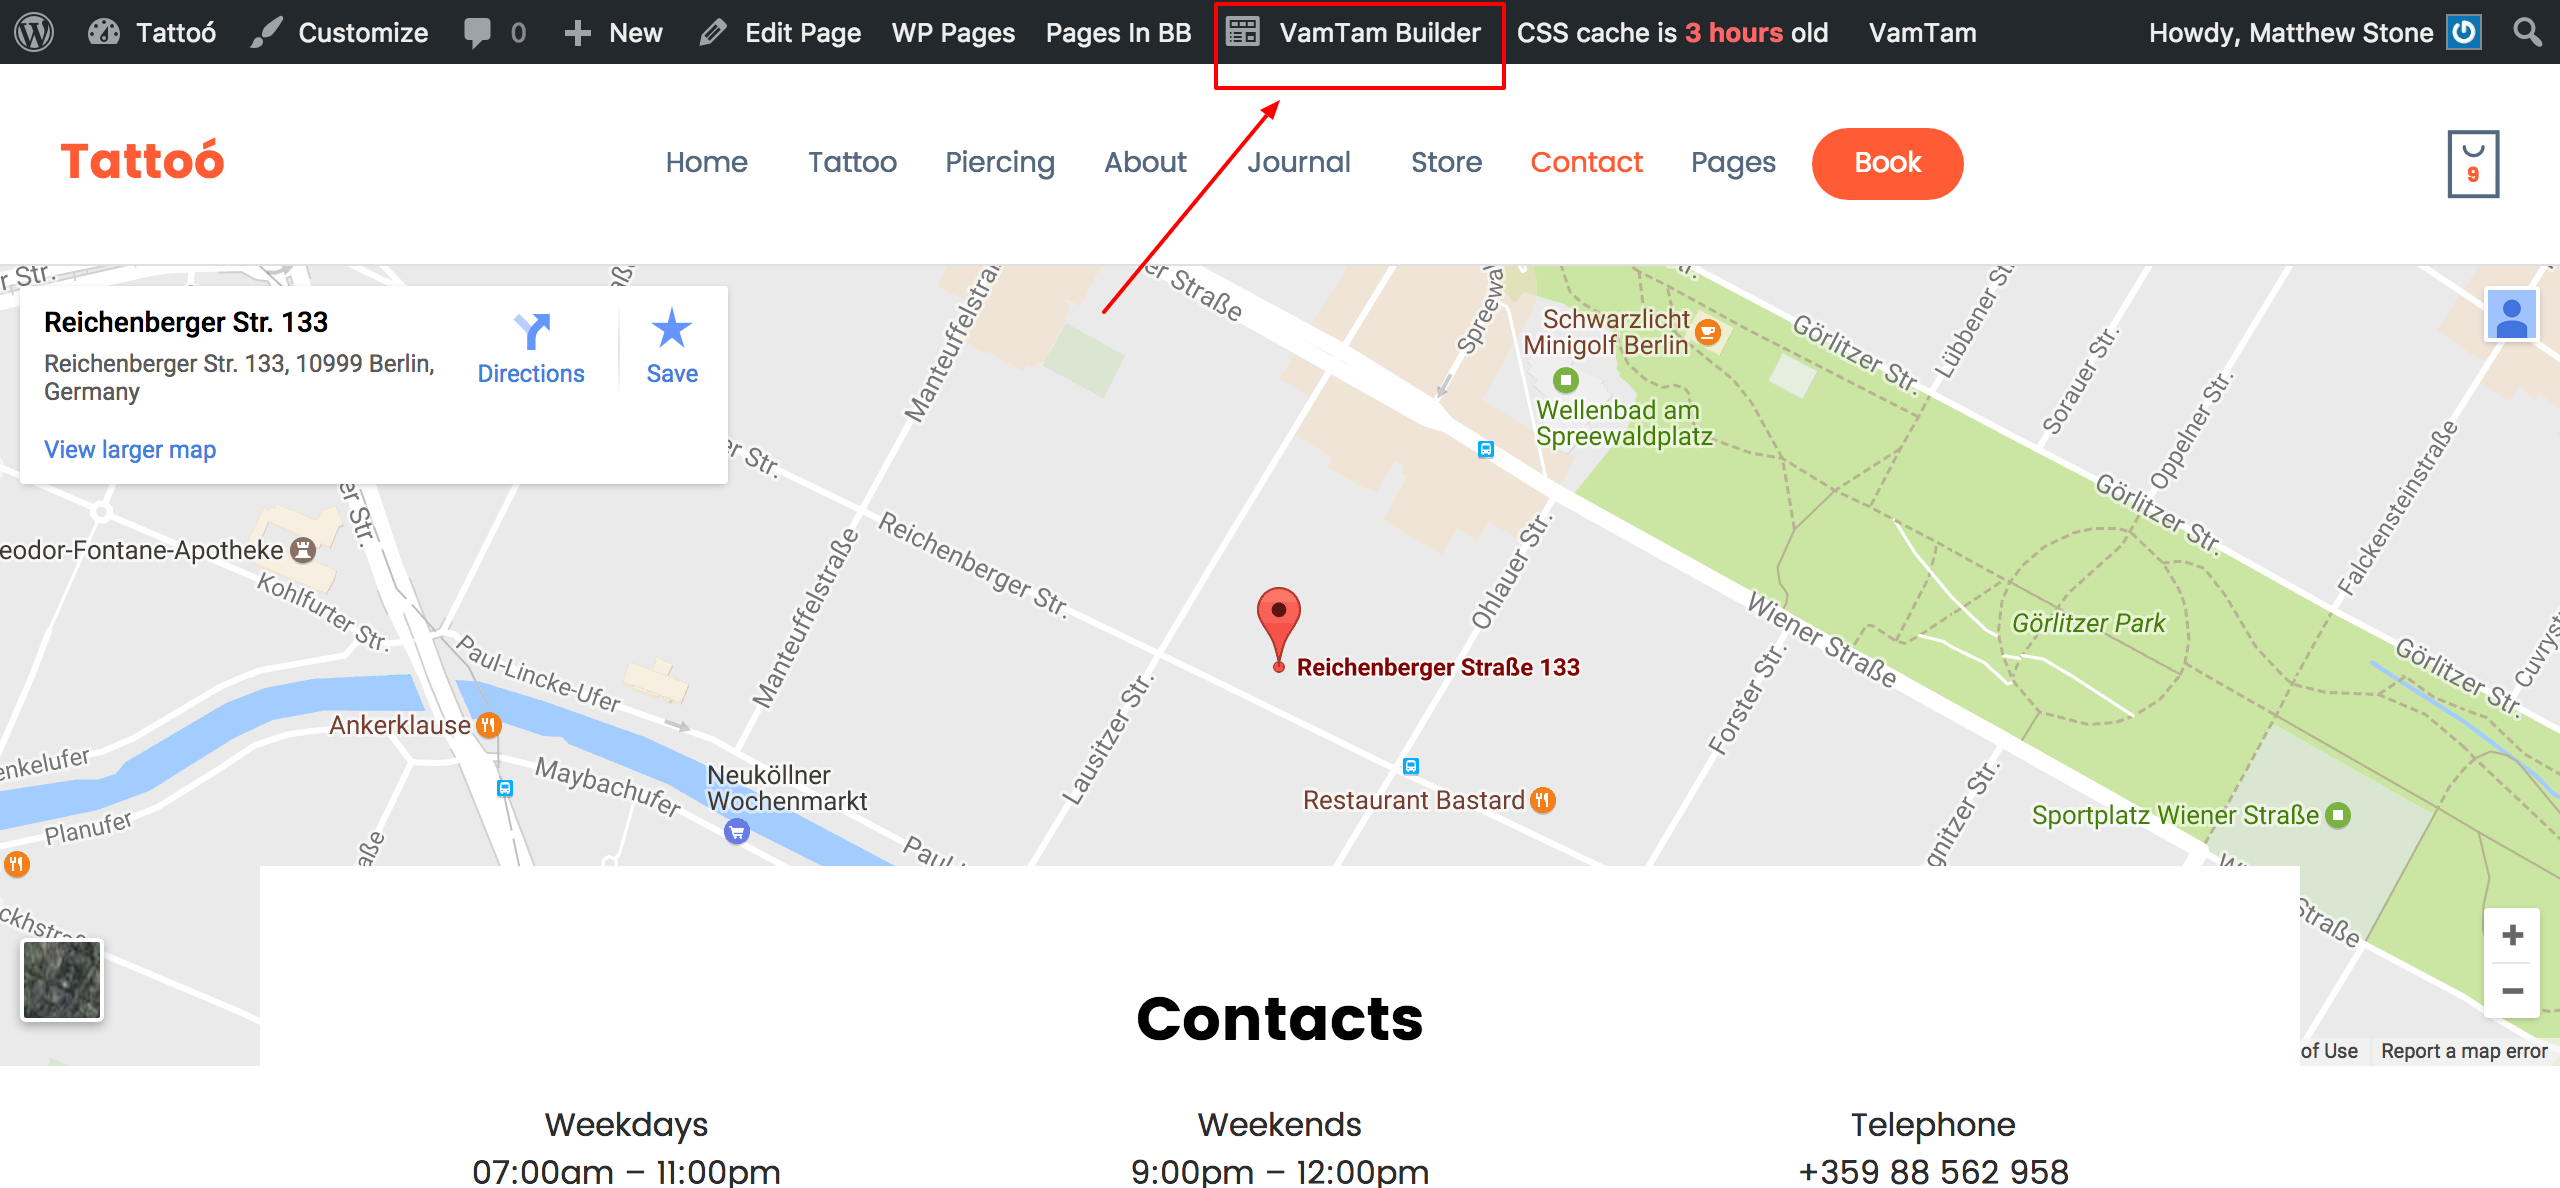 Vamtam Beaver Themes How To Change The Google Map In The Contacts - Google maps themes